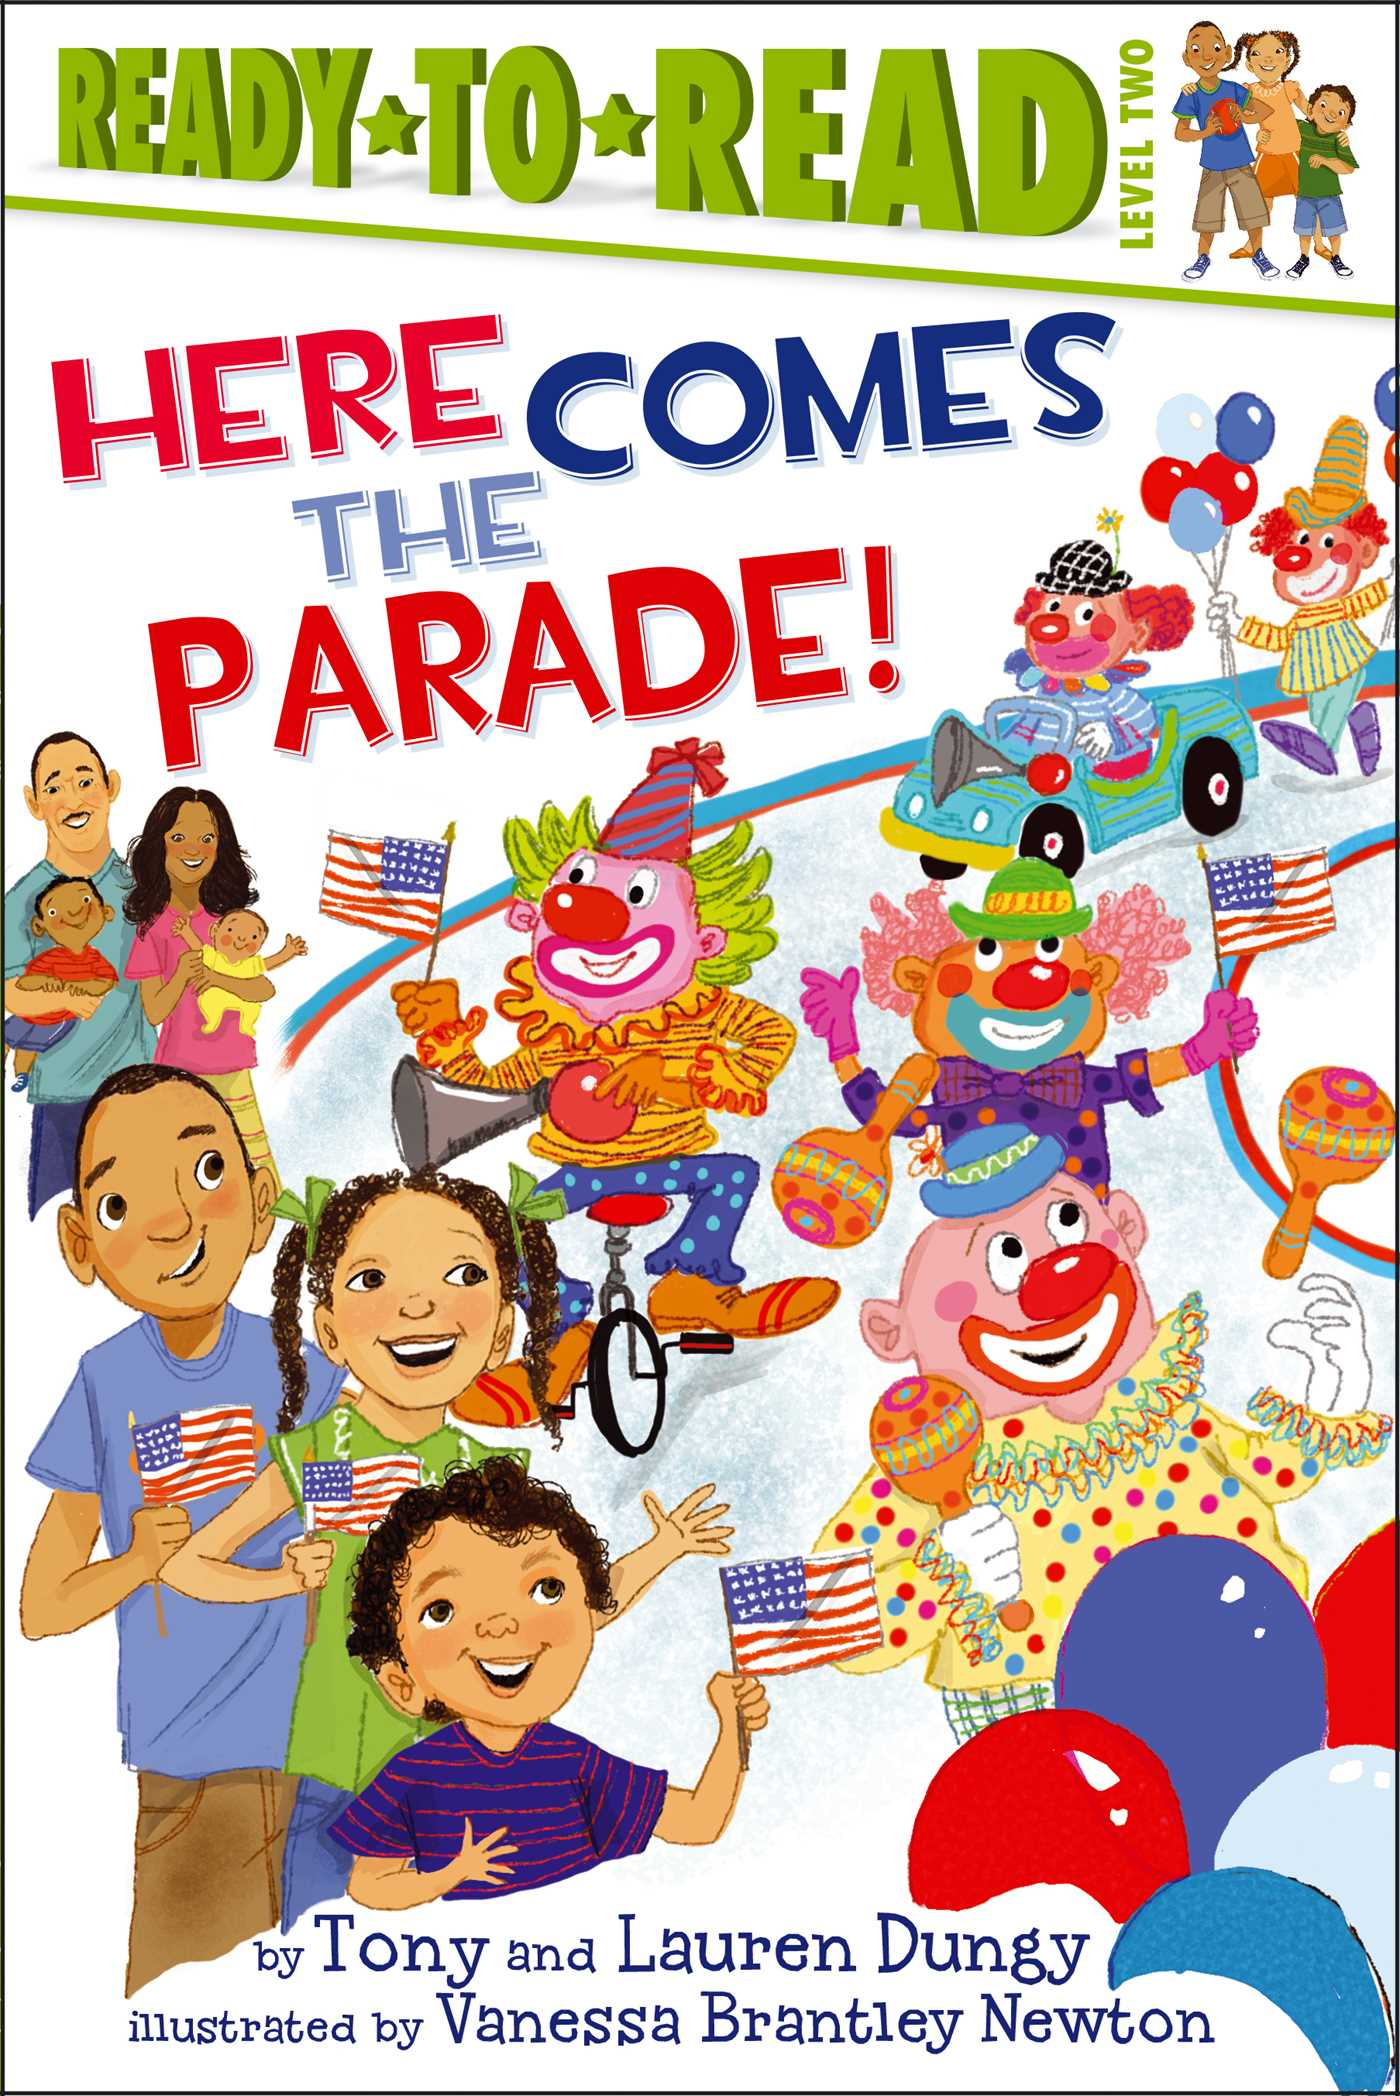 Here-comes-the-parade!-9781442454712_hr